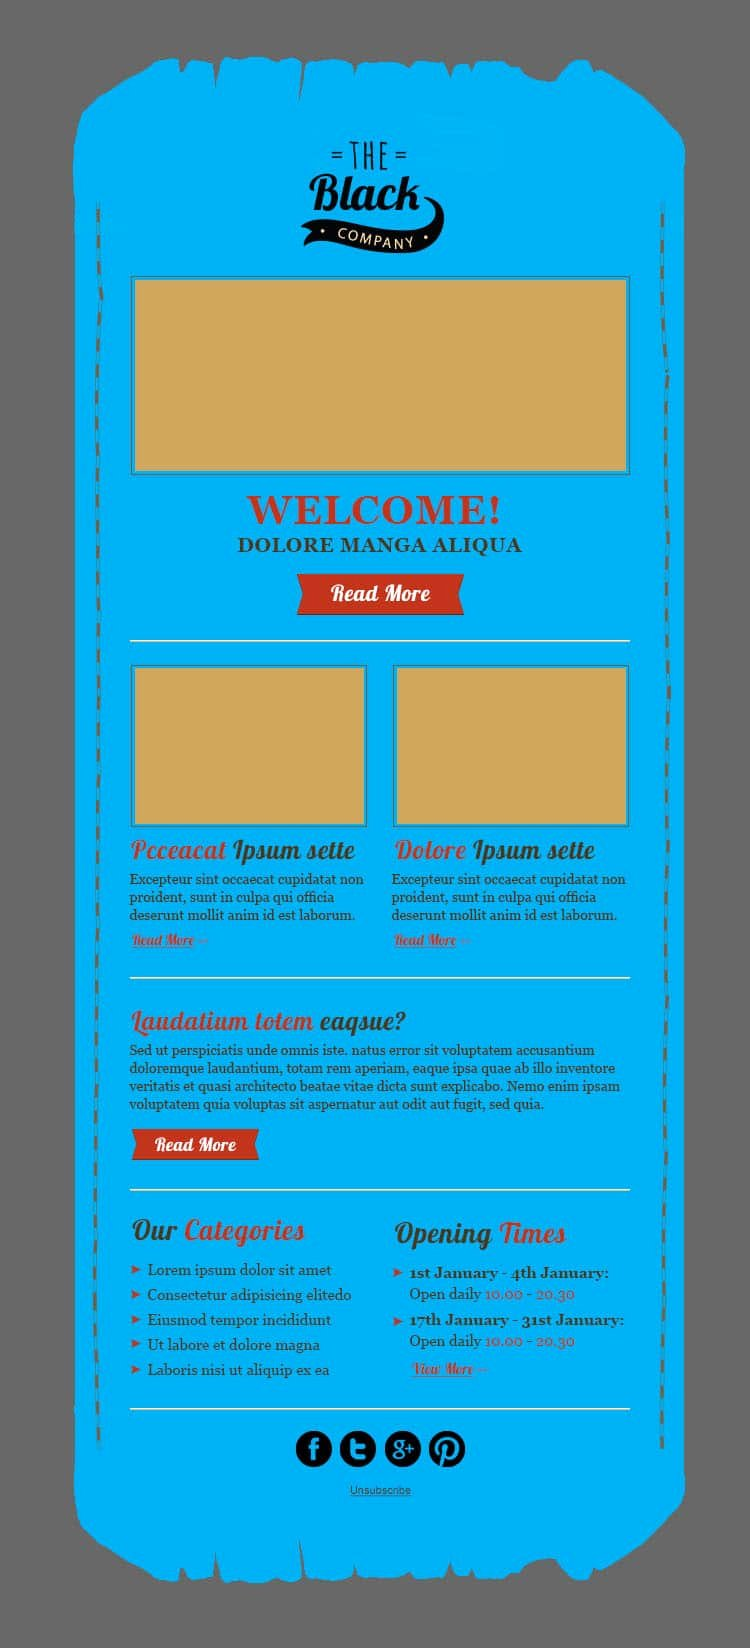 Free Email Template Psd Inspirational Free Download Email Template Design with Psd